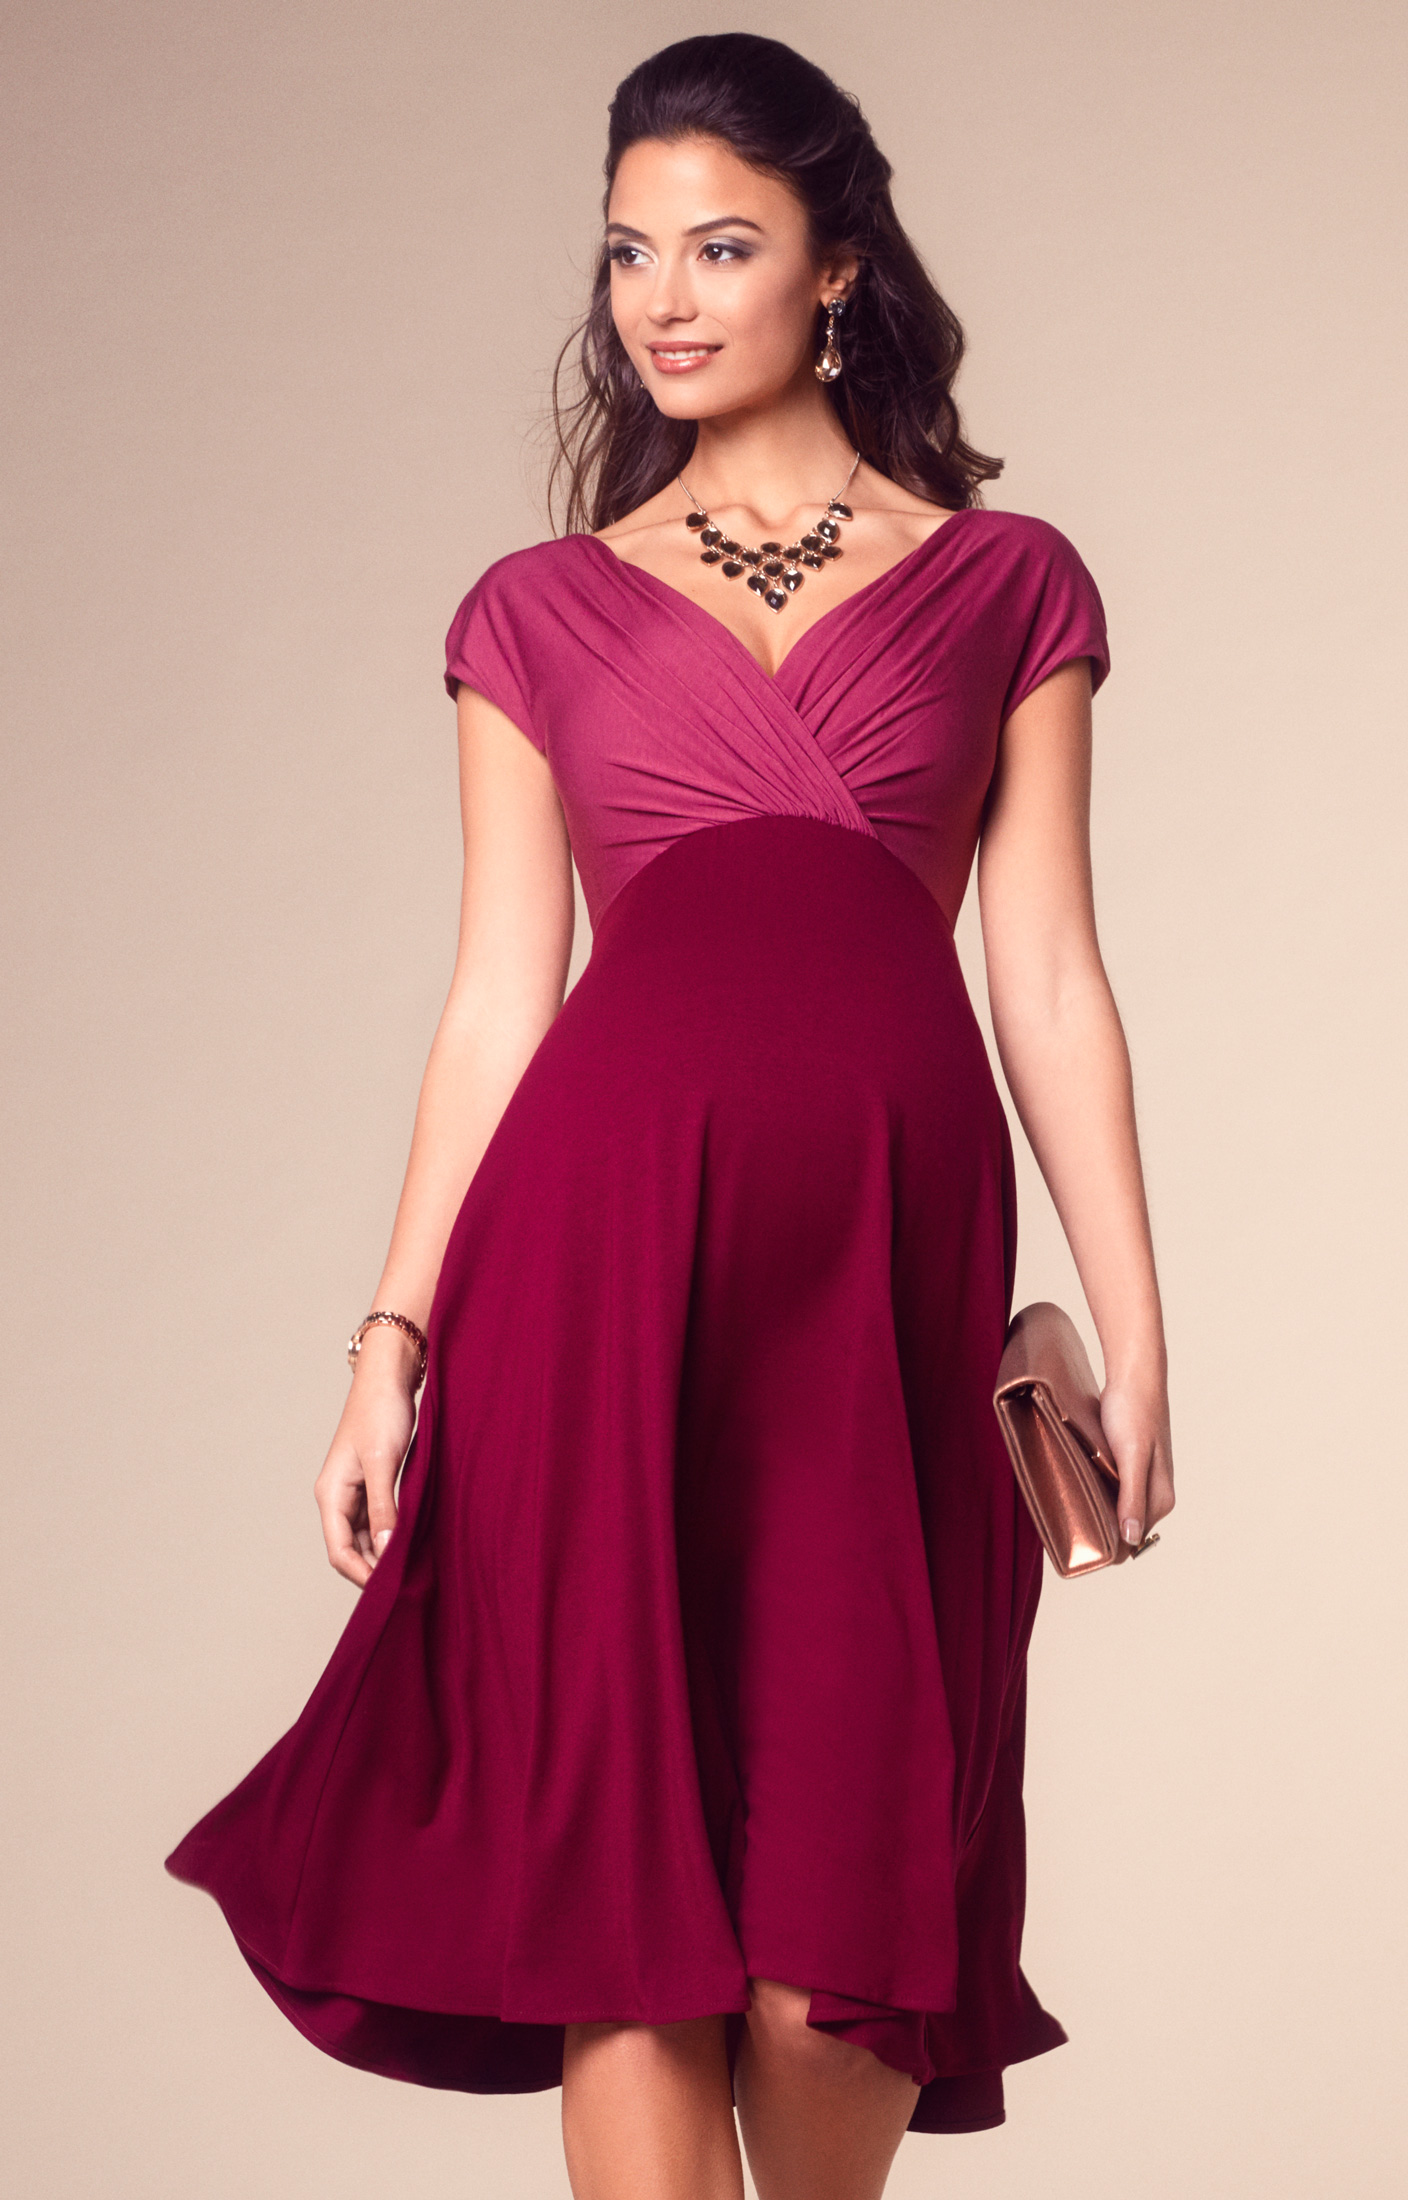 fe04f7201f383 Maternity Dresses Long Sleeve Pregnancy Dress Clothes for Pregnant Women